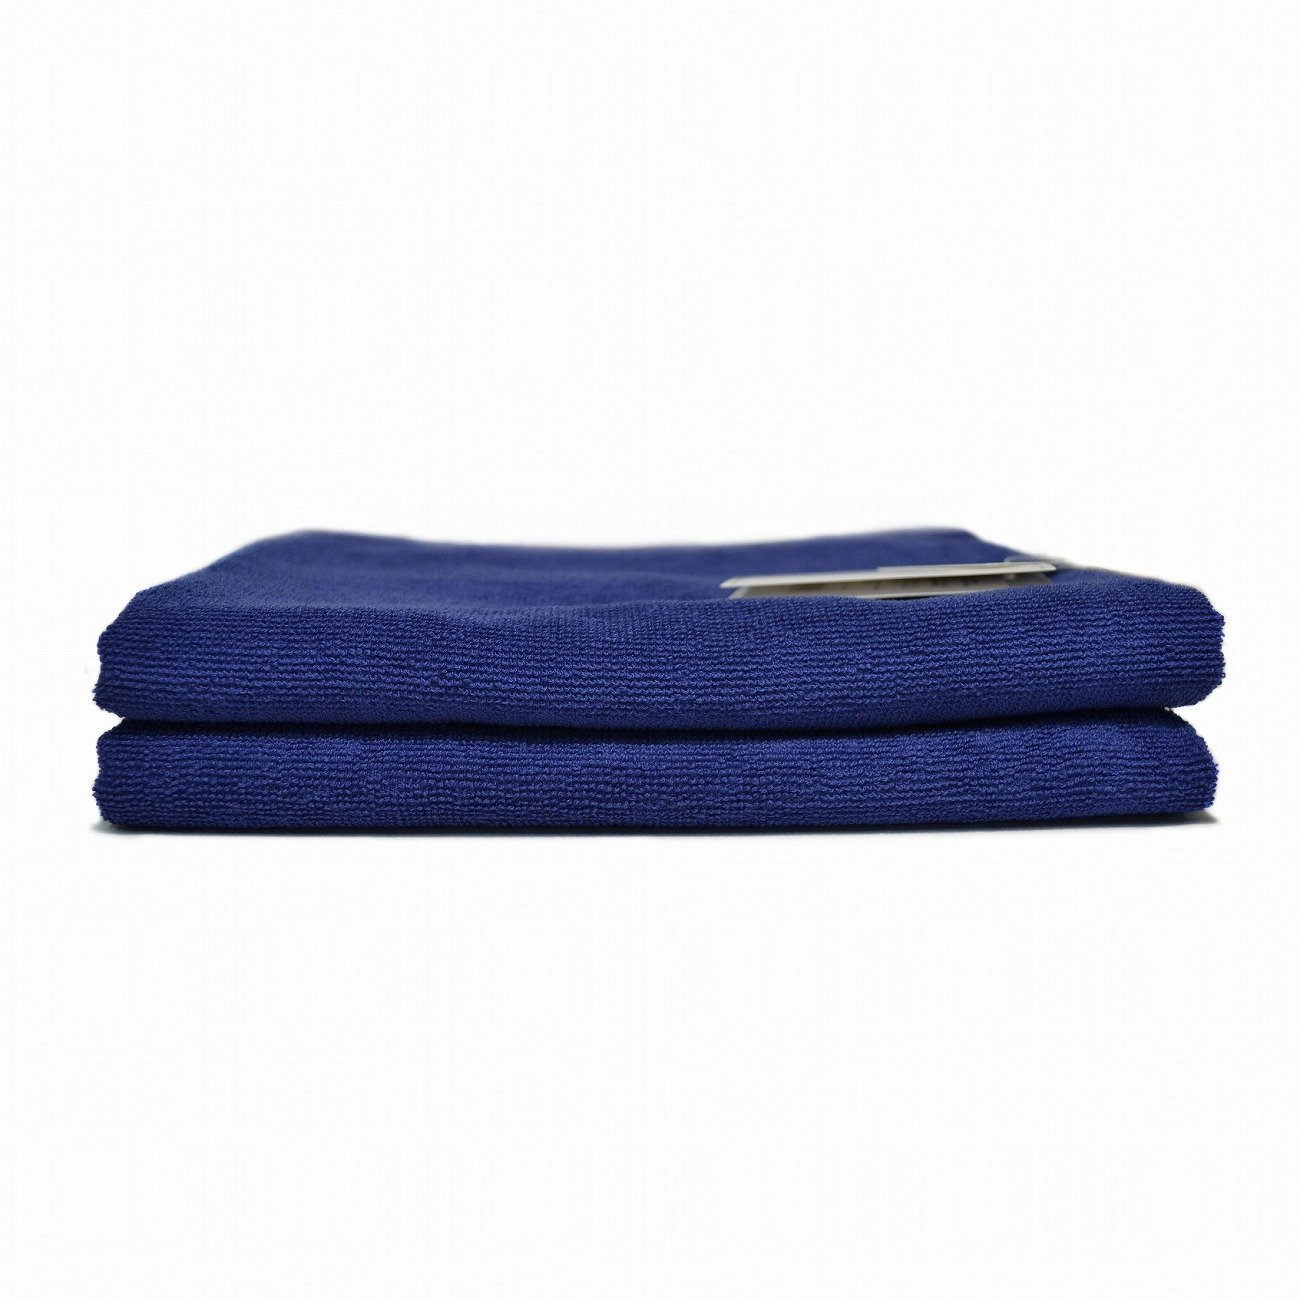 Imabari Hotel Towel Face Towel Set of 2 (Blue) by Imabari (Image #2)